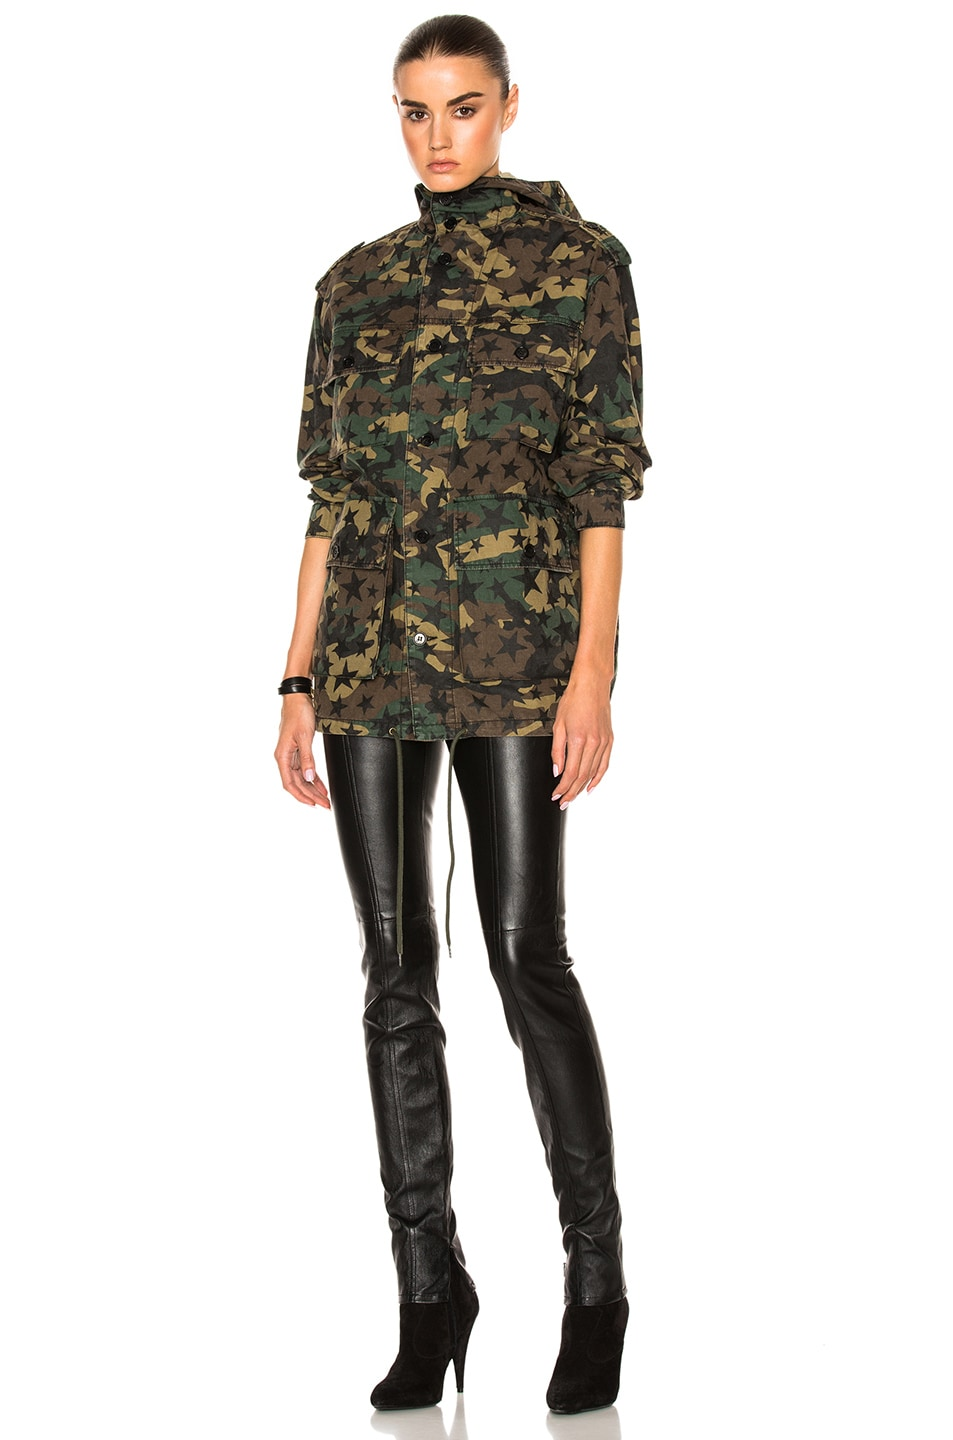 Image 2 of Saint Laurent Army Camouflage Jacket with Stars in Army Camouflage